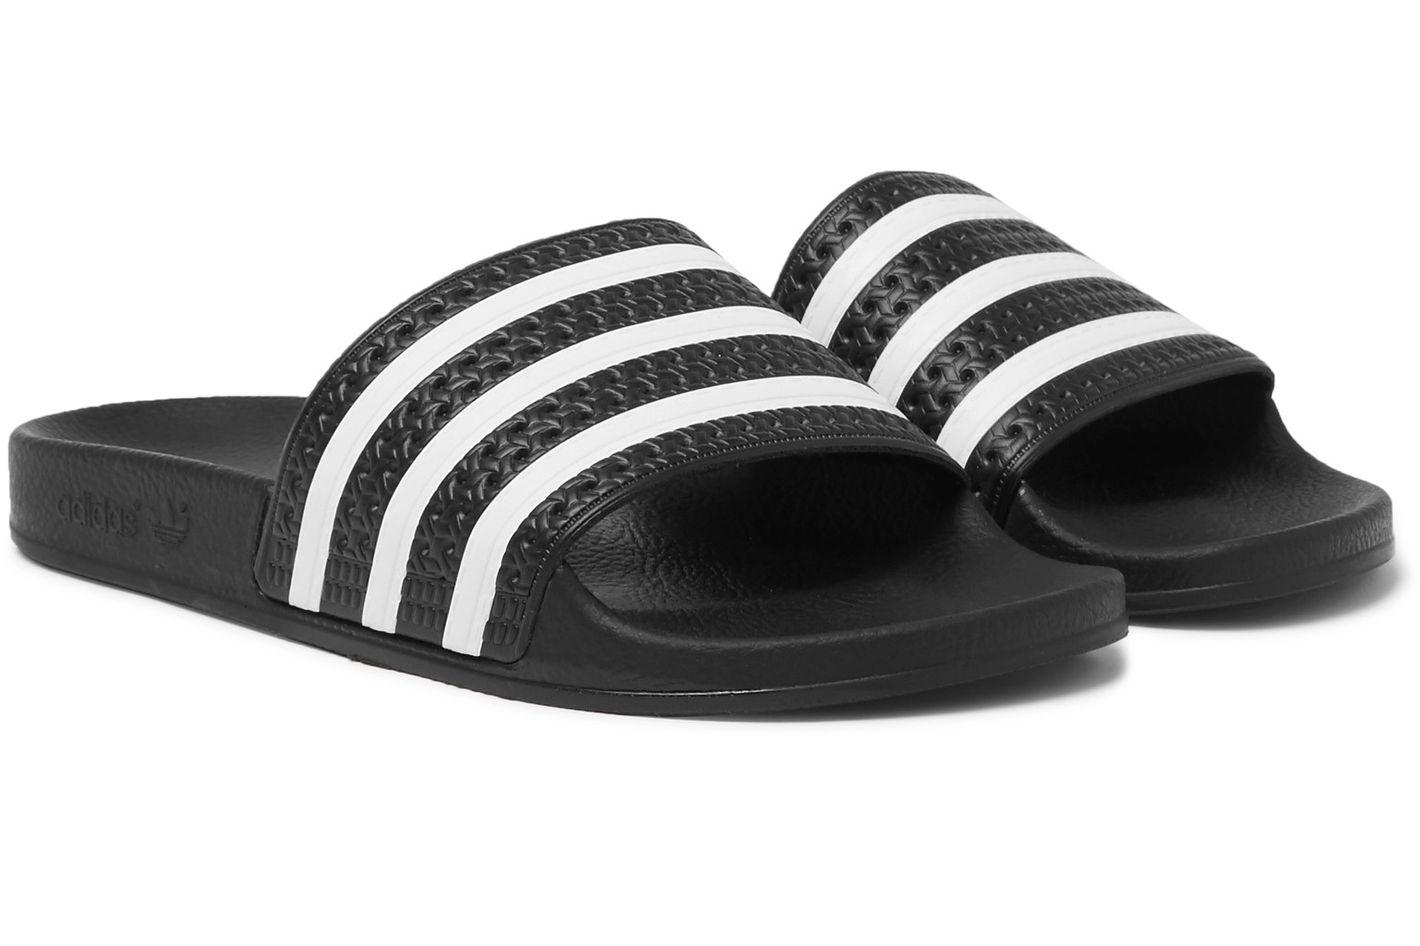 Adidas Originals Adilette Textured-Rubber Slides